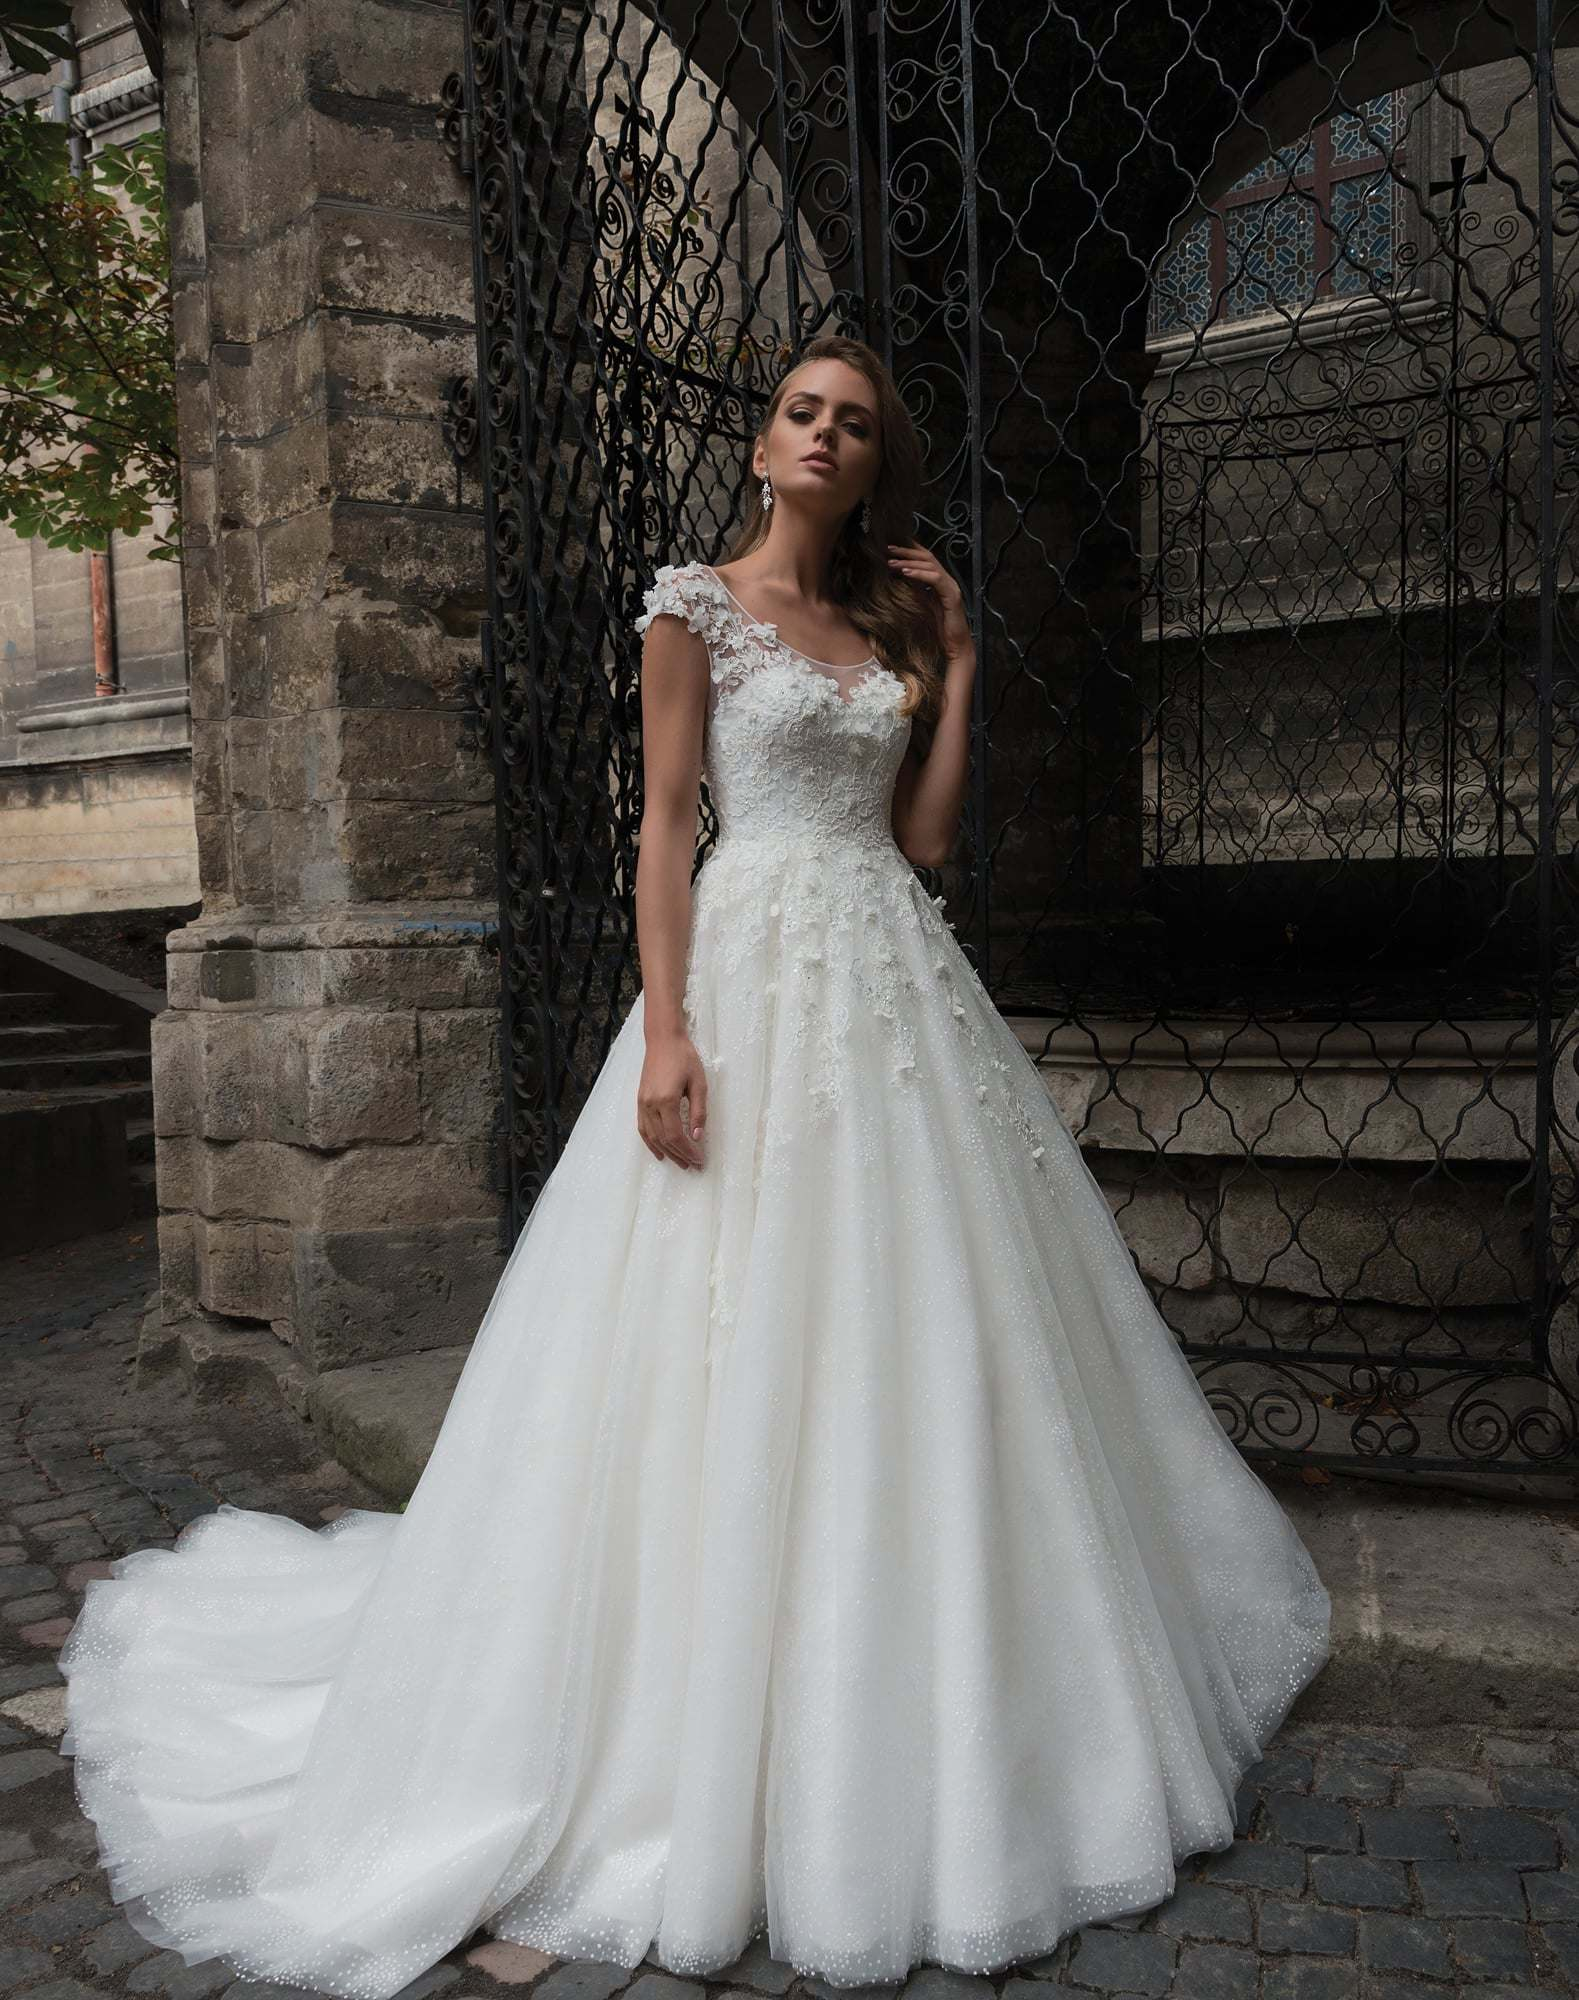 5bd679346f9 China Amelie Rocky Hand-Made Flower Lace Tulle Wedding Dress 2018 - China  Lace Tulle Wedding Dress